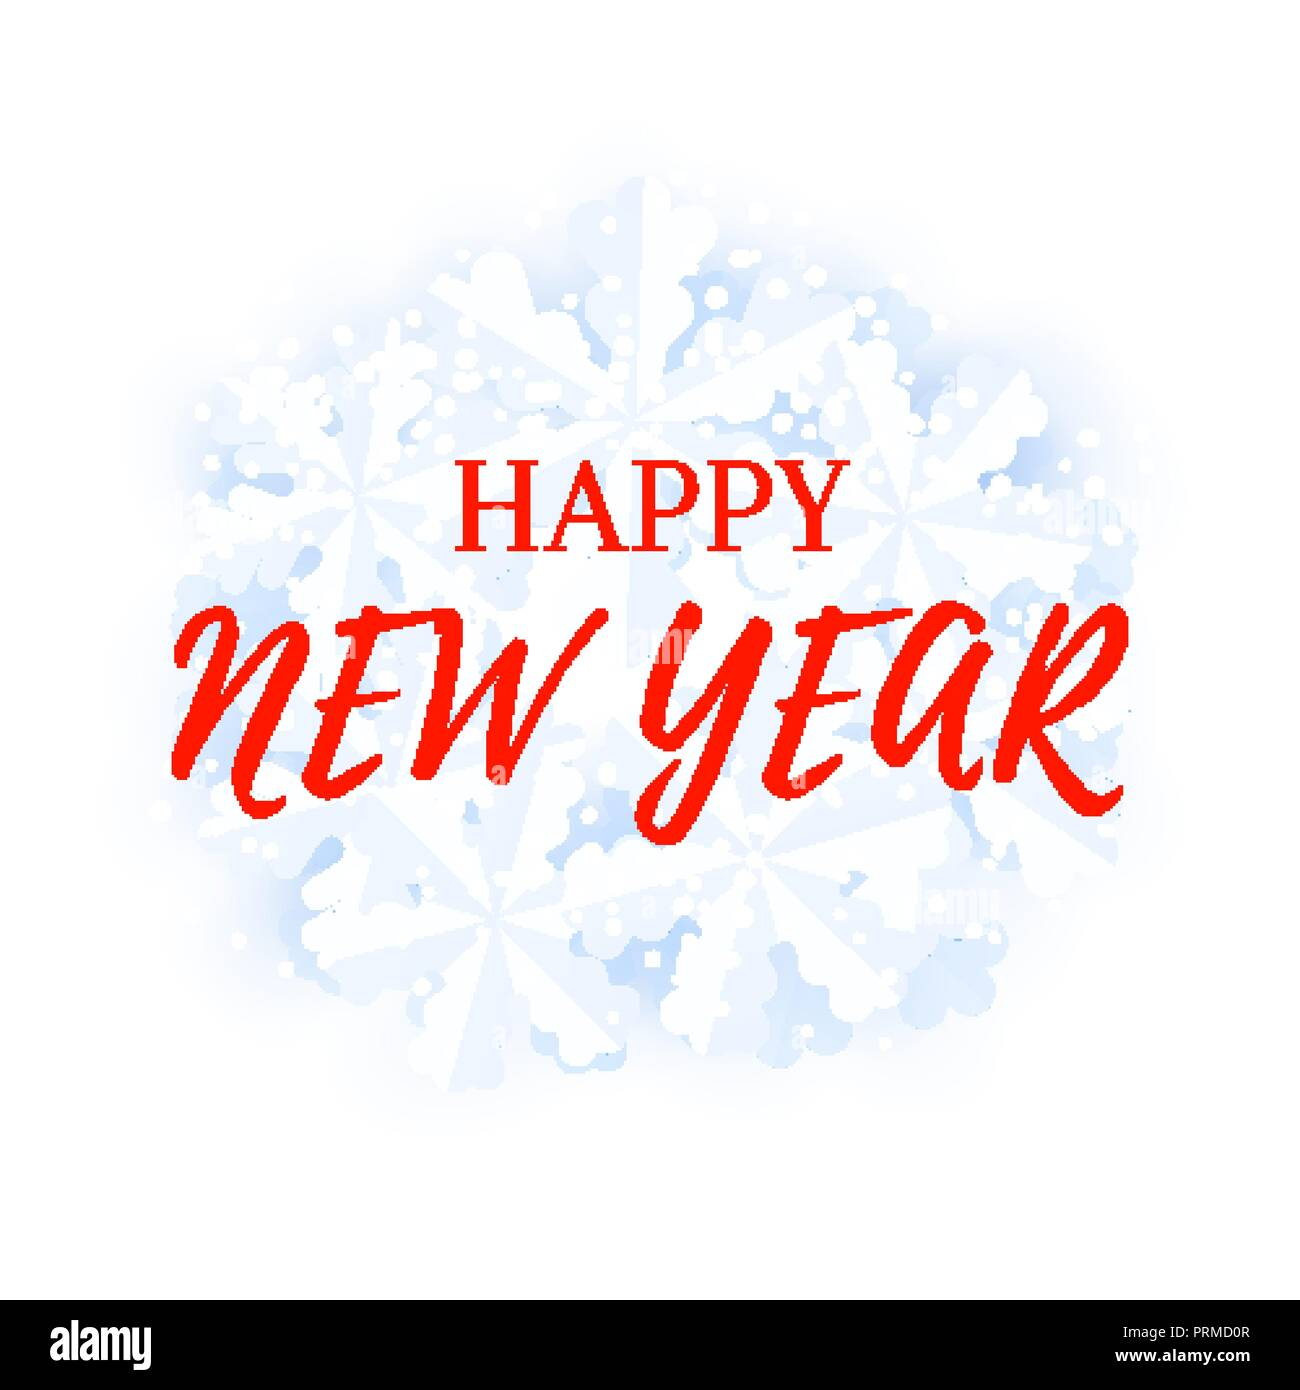 happy new year greeting card template with snowfall and snowflakes background